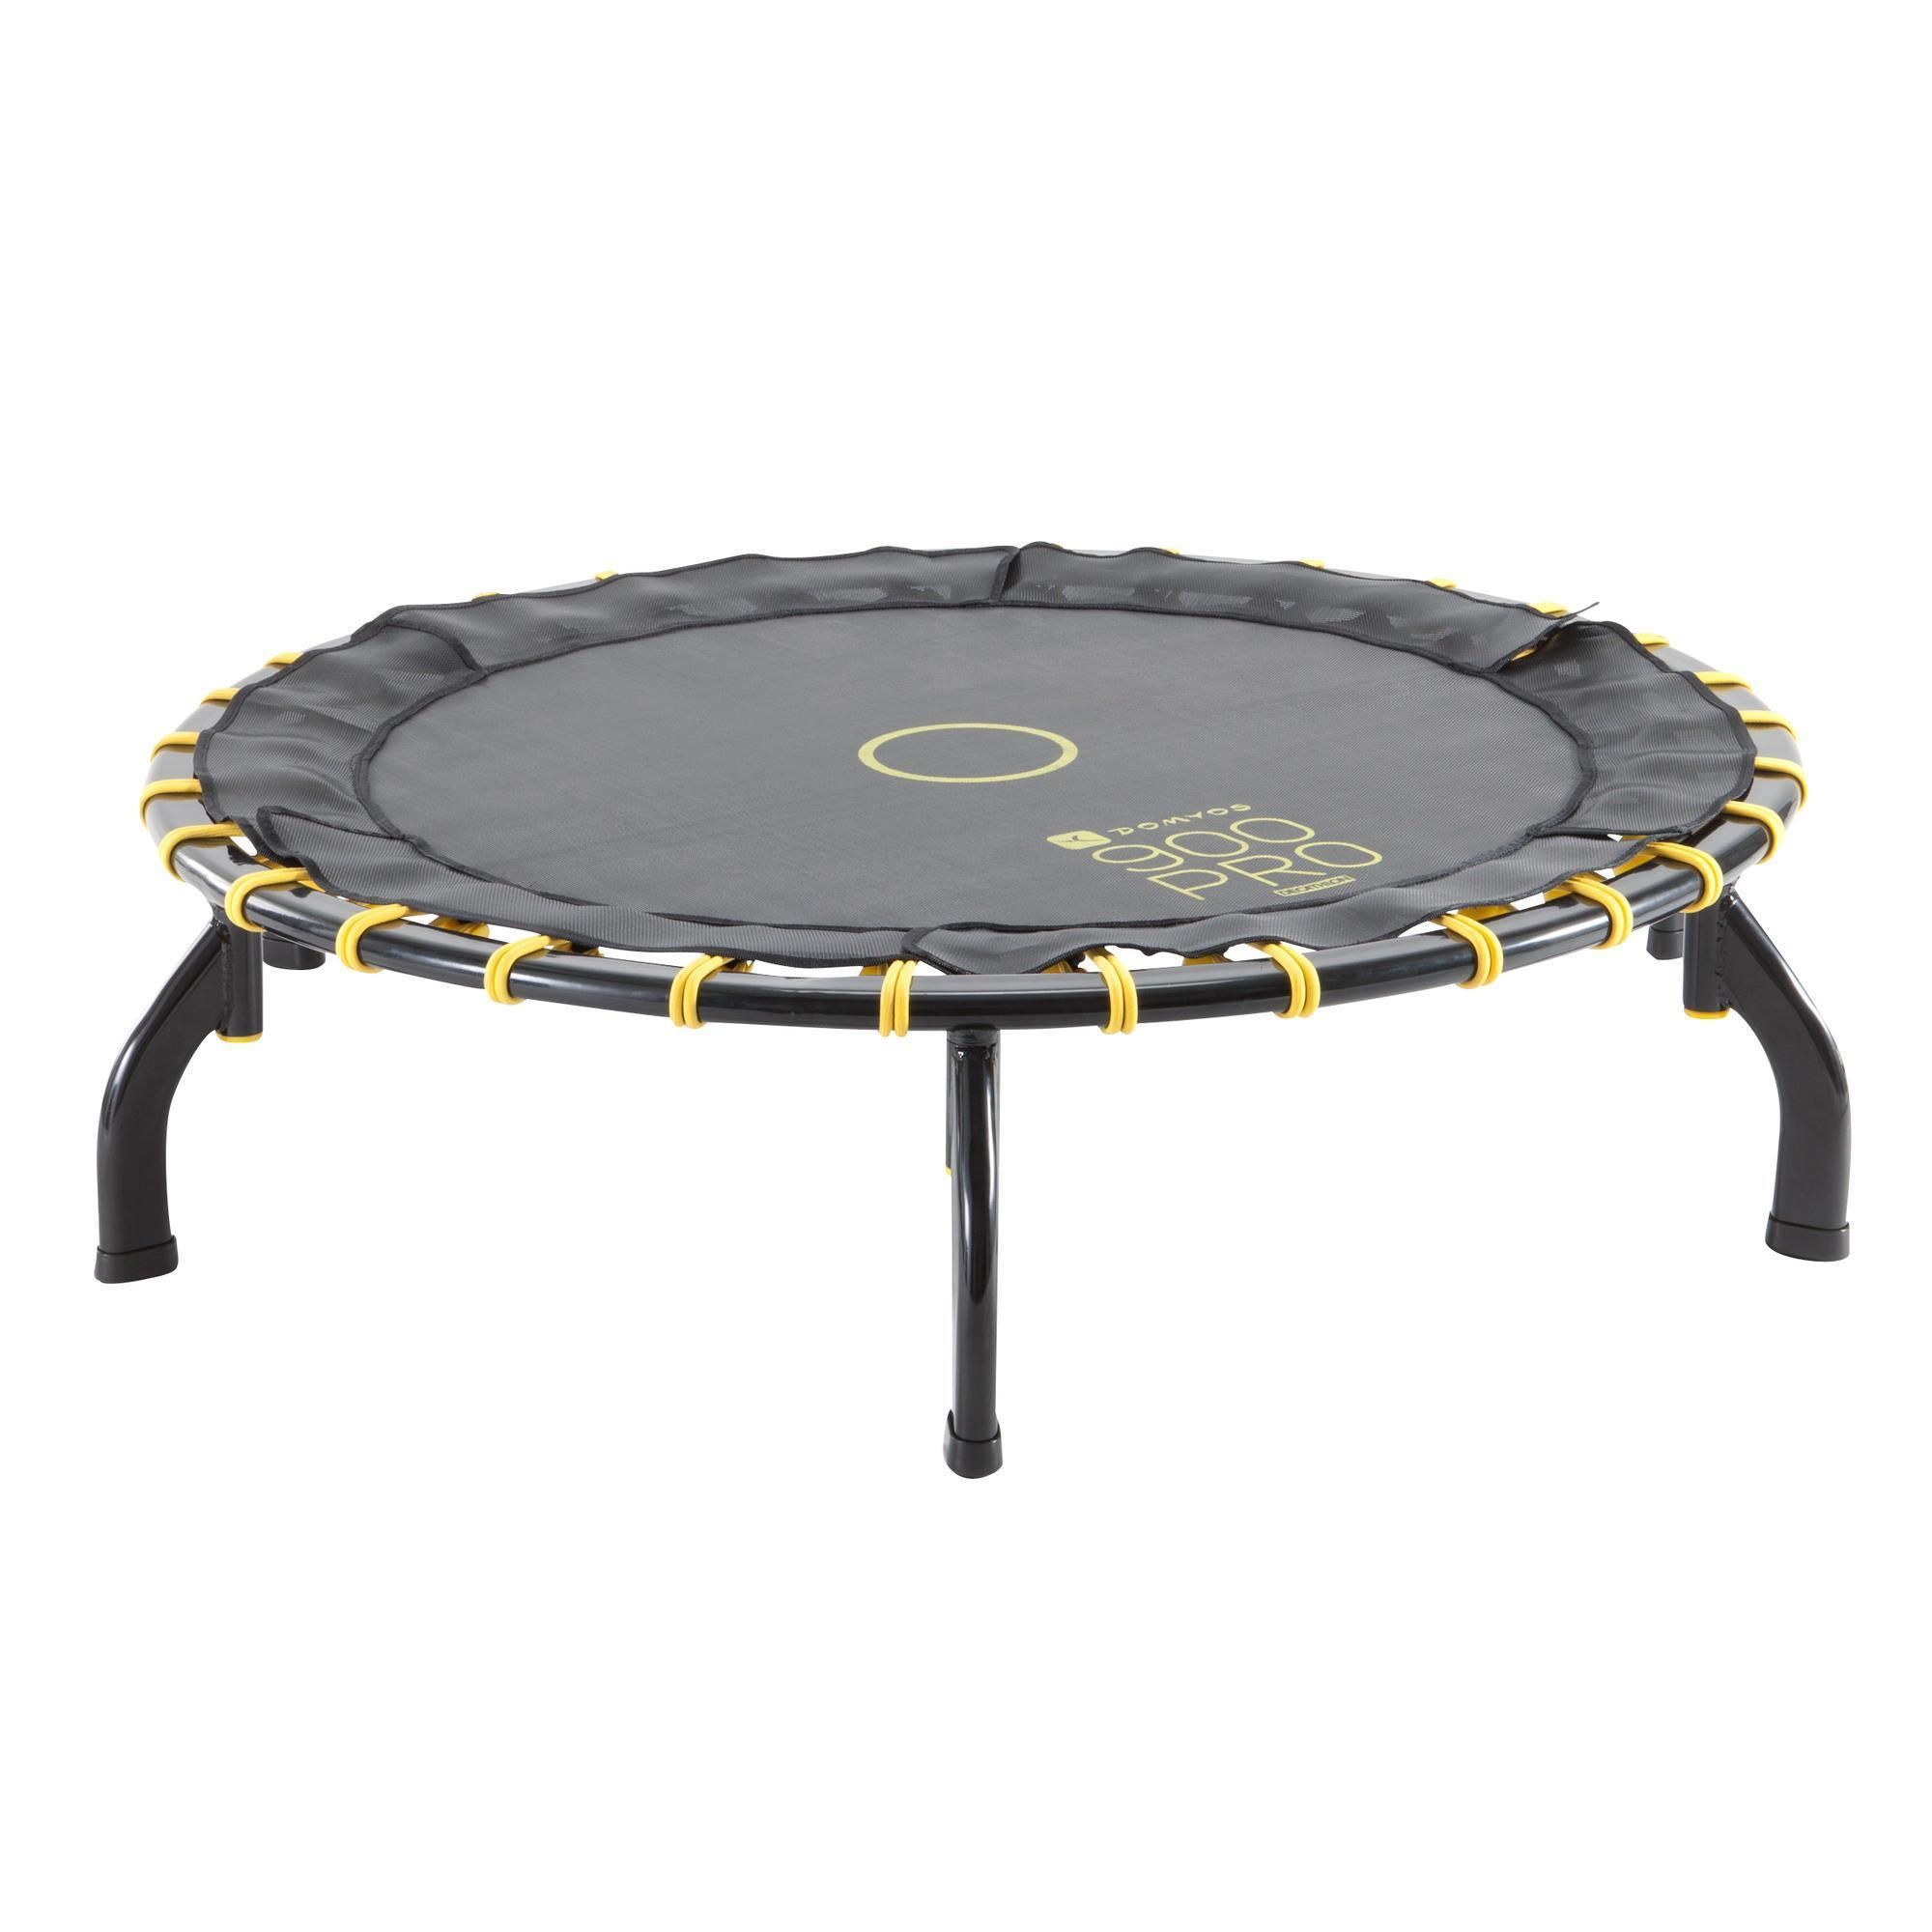 Trampoline 900 pro domyos by decathlon for Trampoline exterieur decathlon